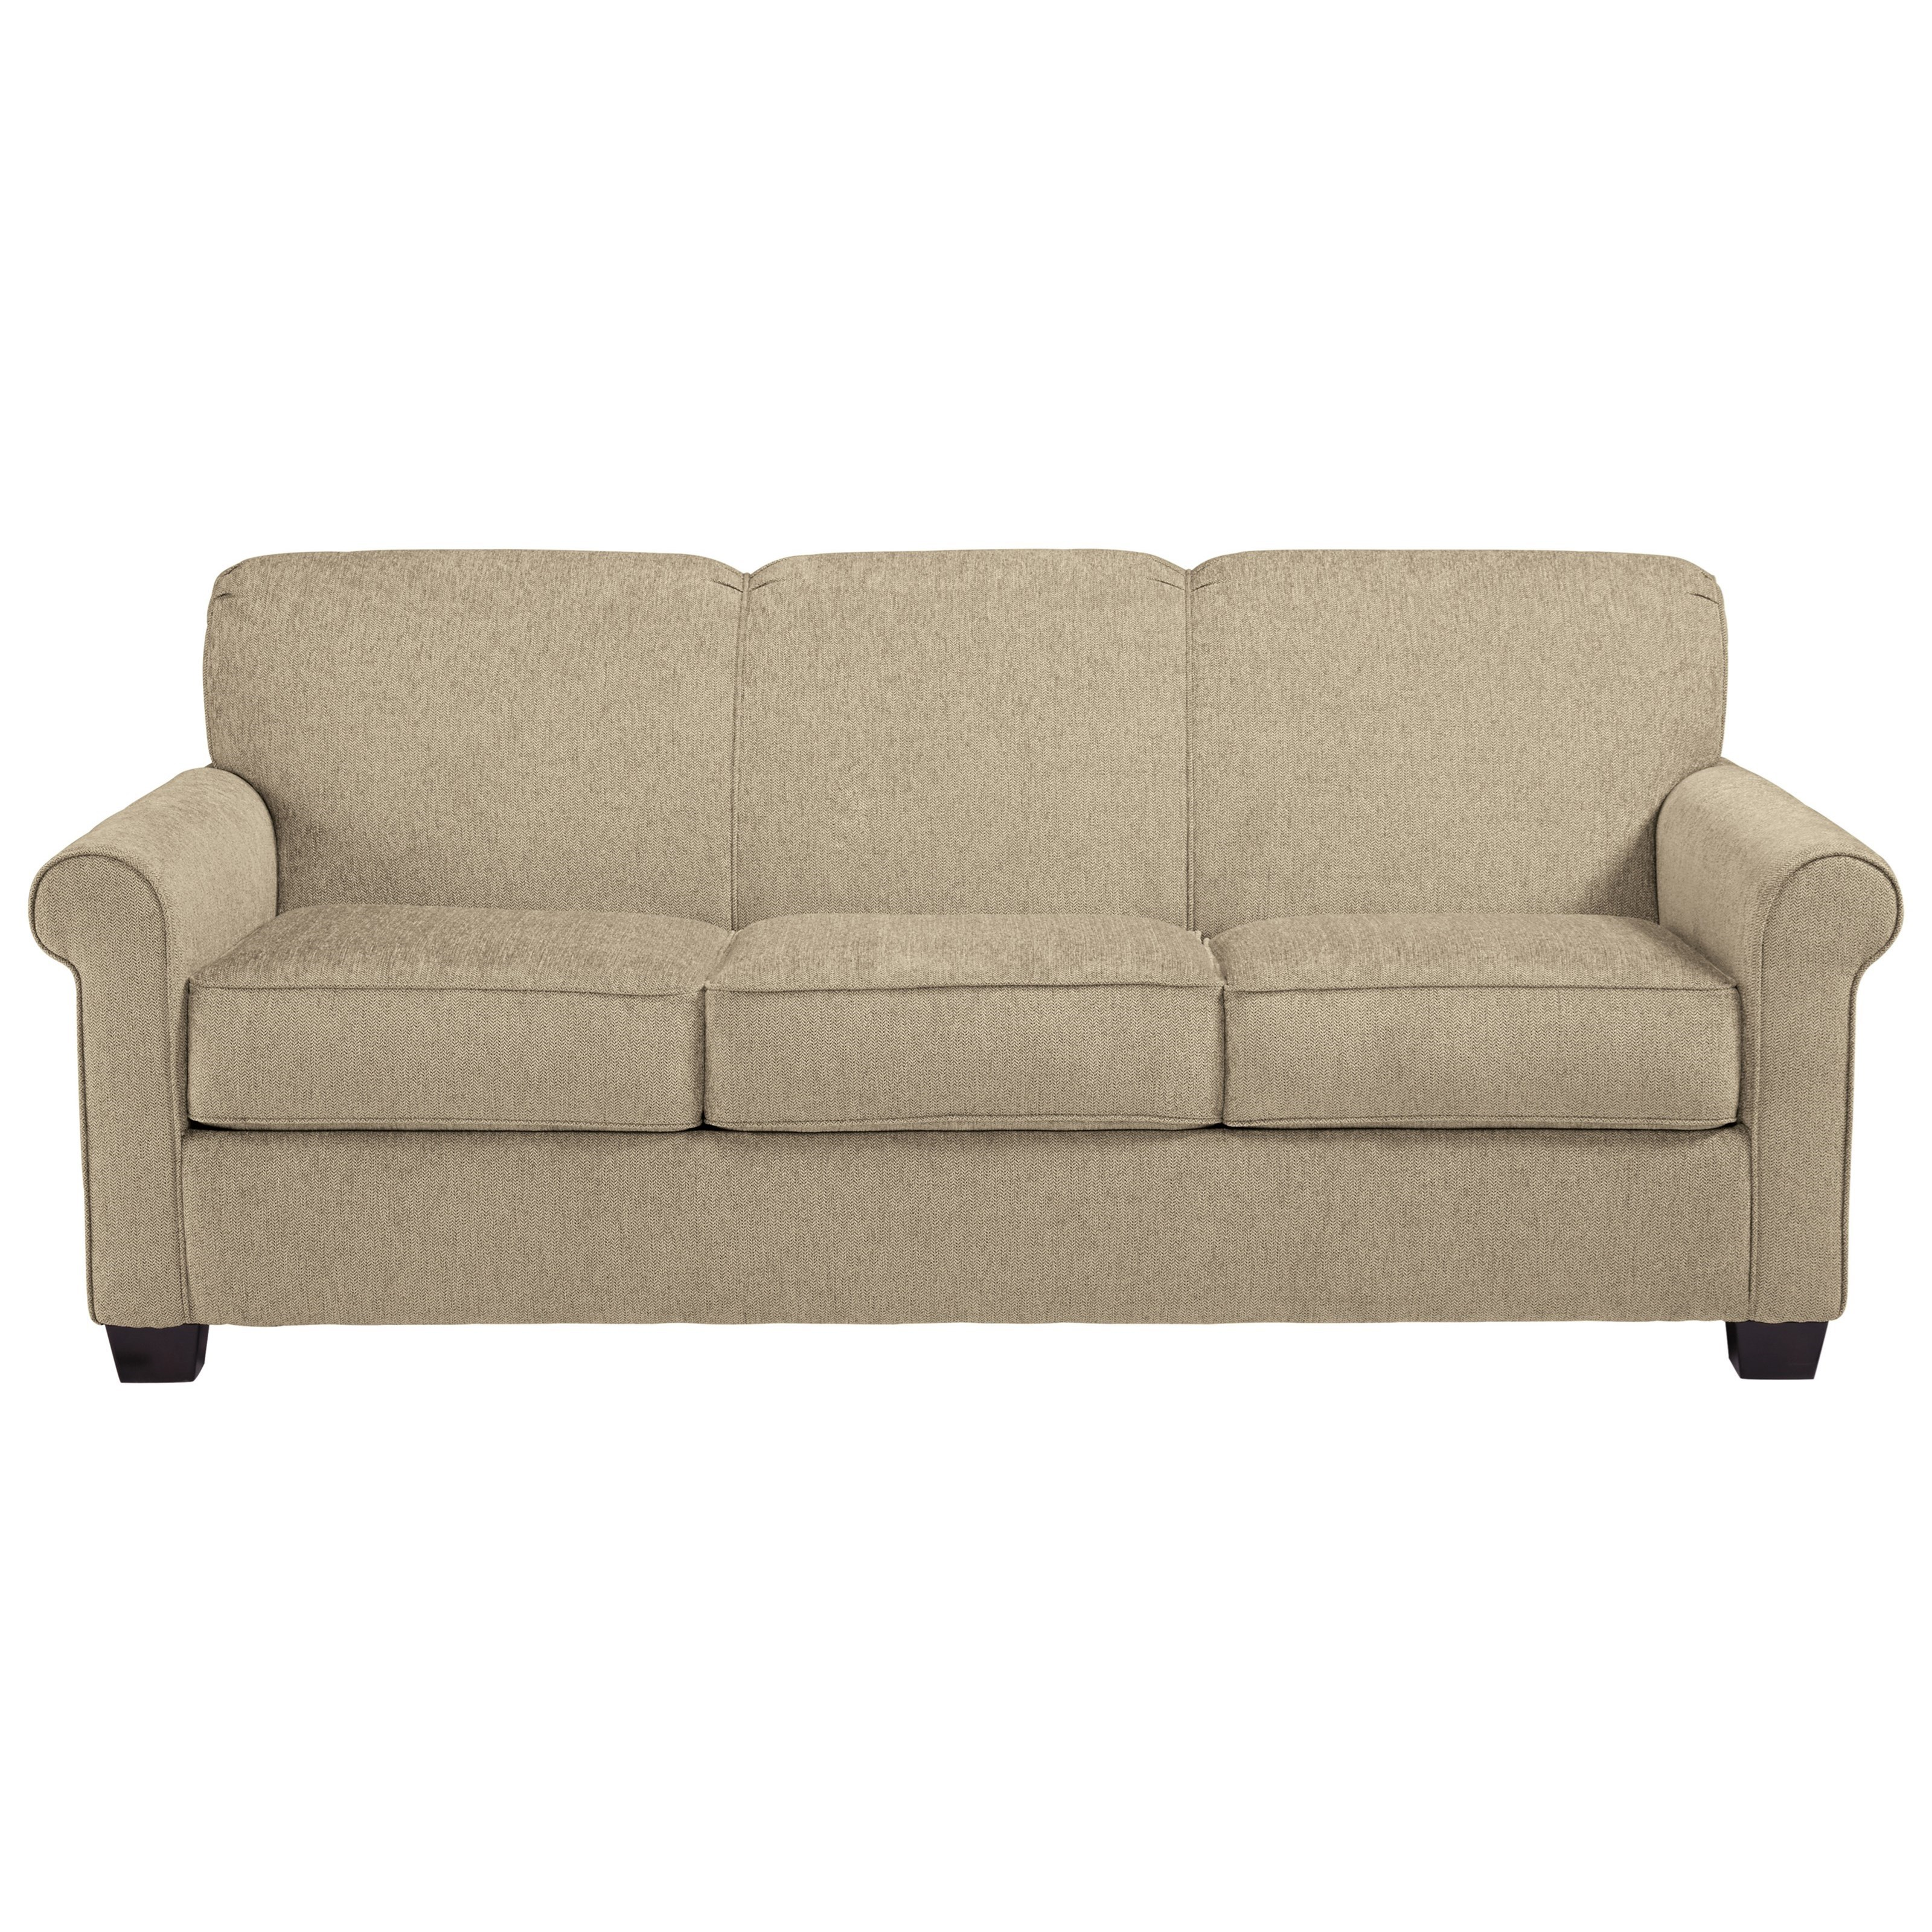 Signature Design by Ashley Cansler  Queen Sofa Sleeper - Item Number: 7380939